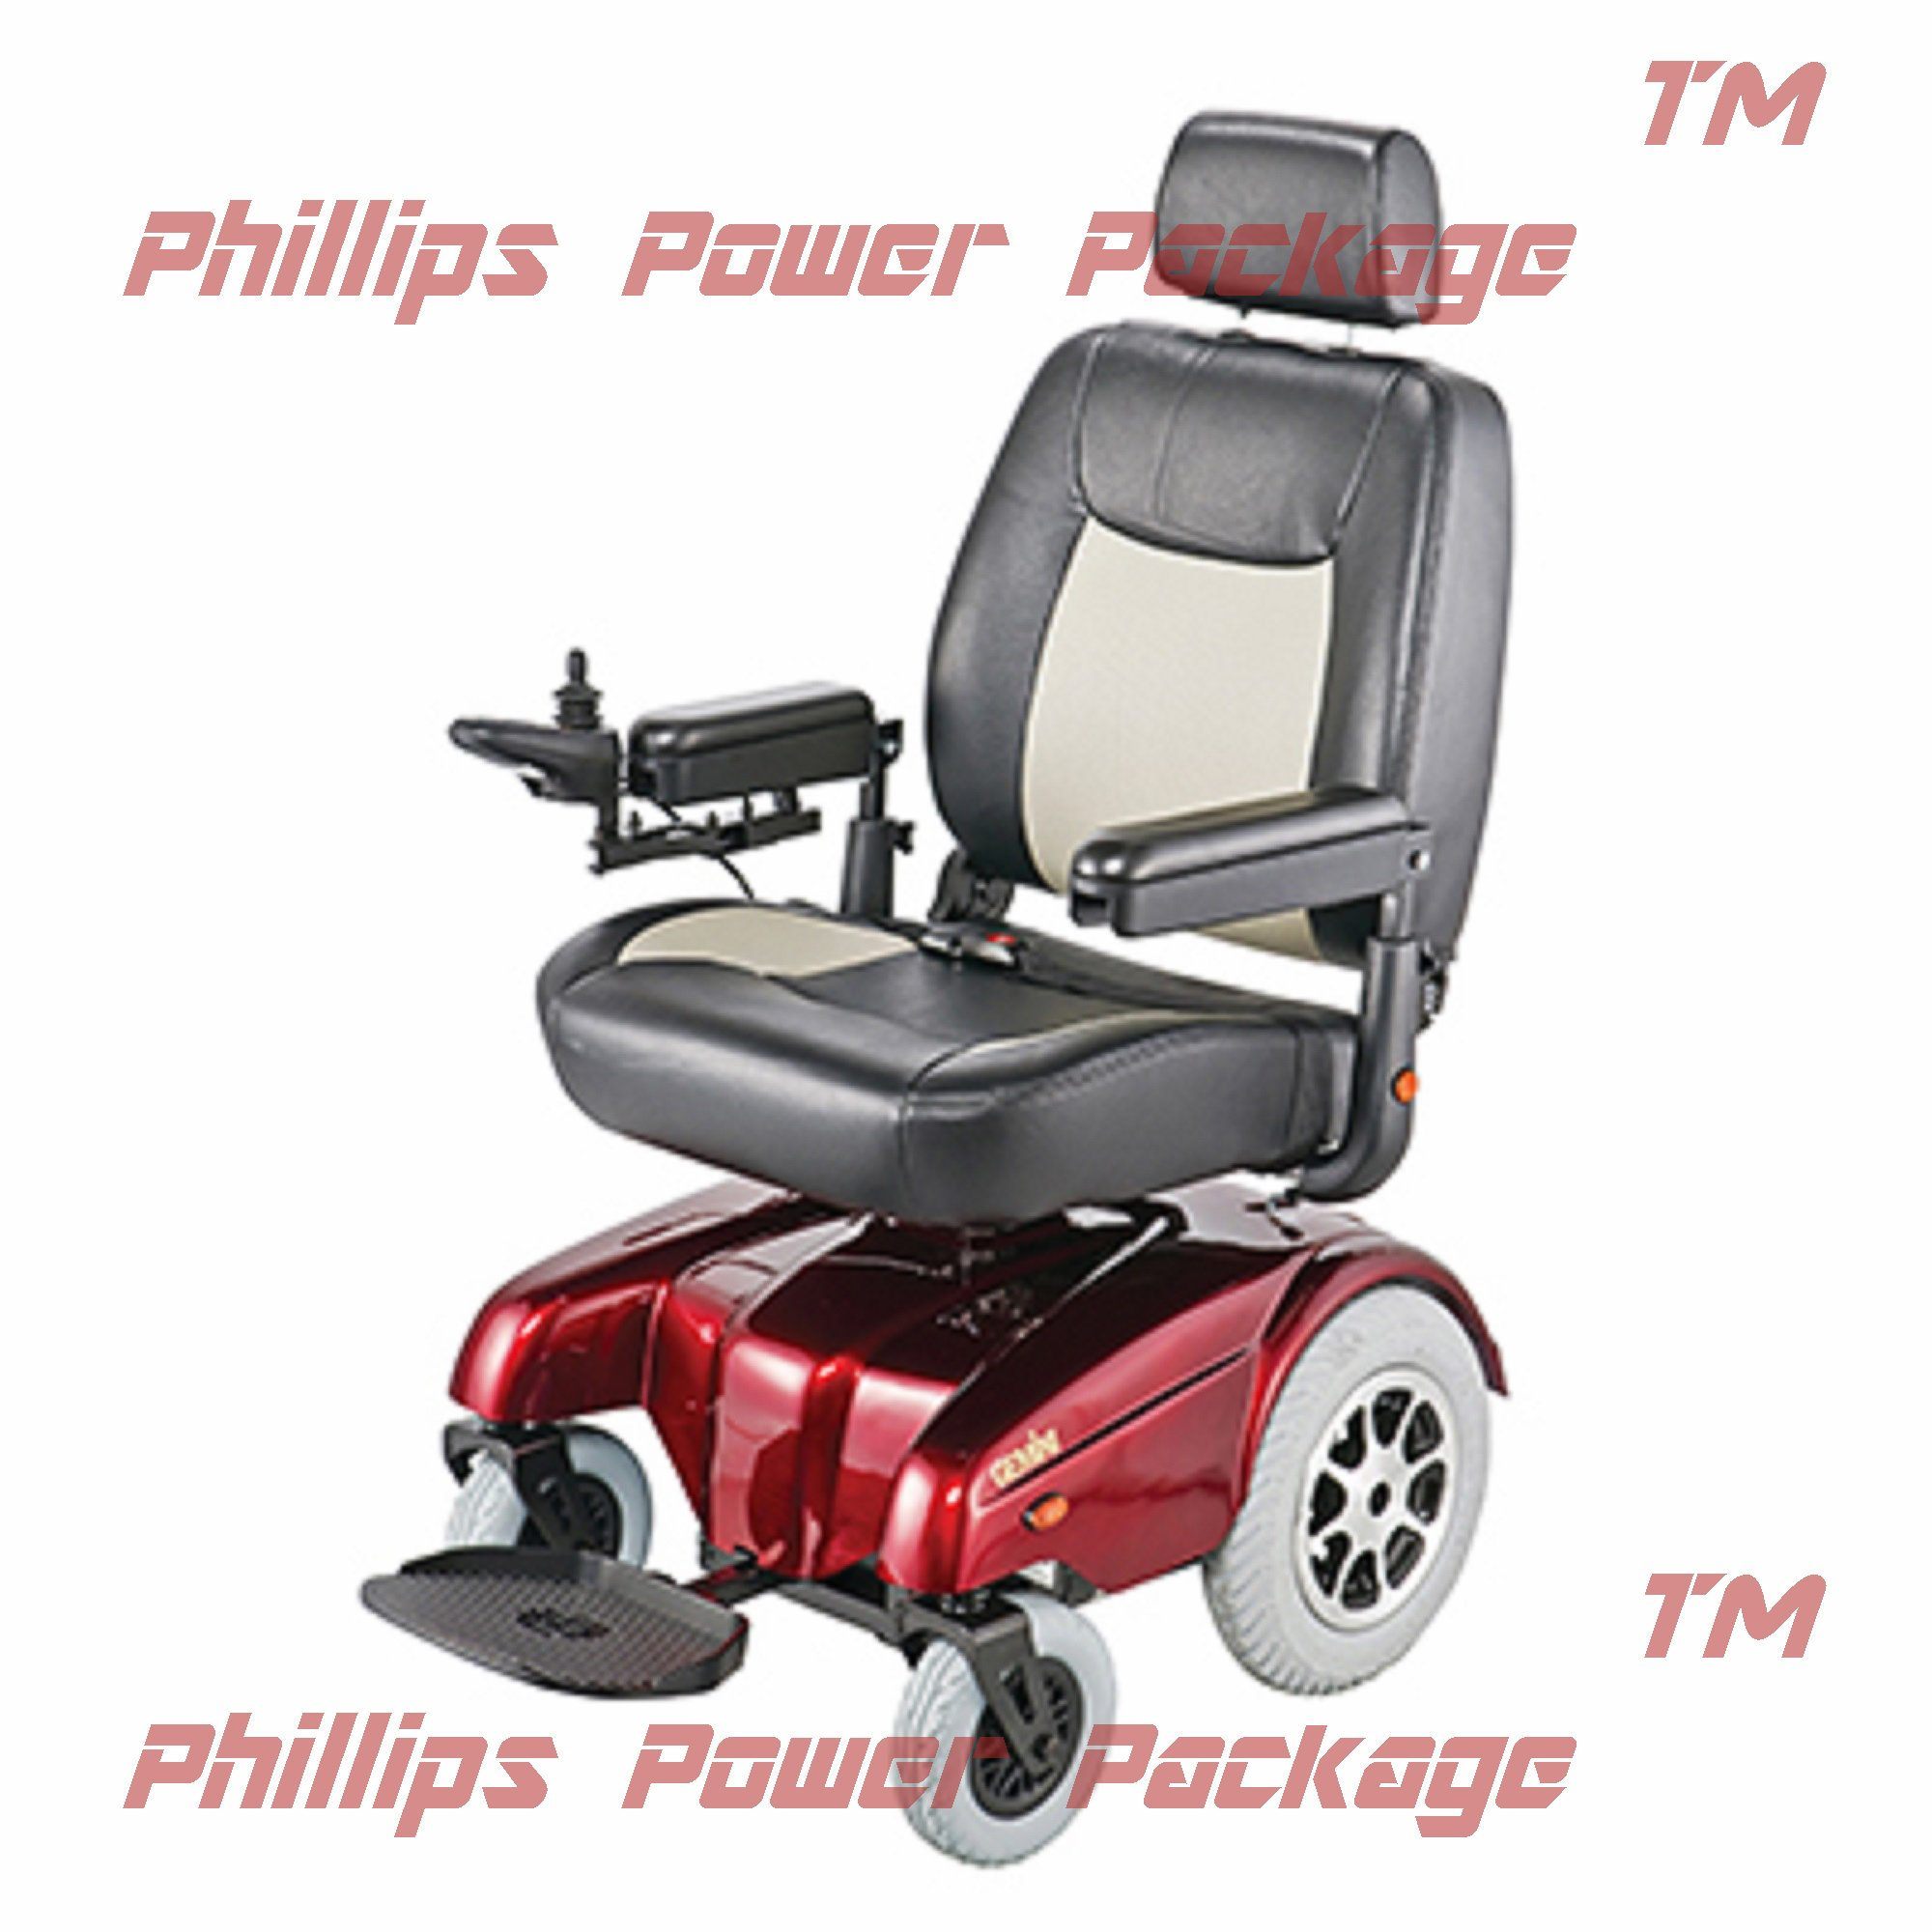 Merits Health Products - Gemini - Heavy Duty Rear Wheel Drive Power Chair, 22''W x 20''D, Red - PHILLIPS POWER PACKAGE TM - TO $500 VALUE